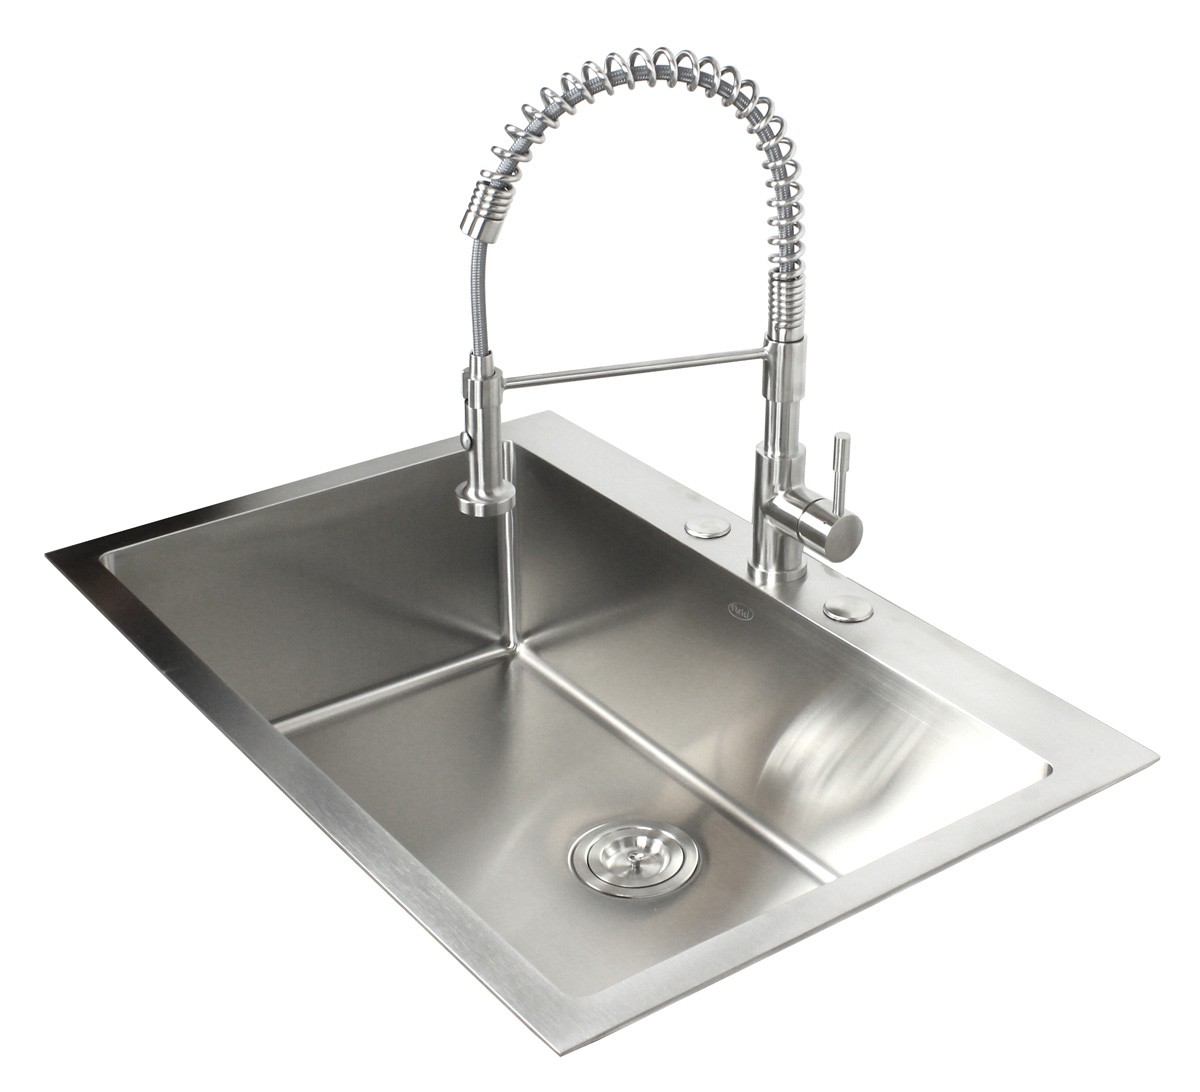 33 Inch Top-Mount / Drop-In Stainless Steel Single Bowl Kitchen Sink